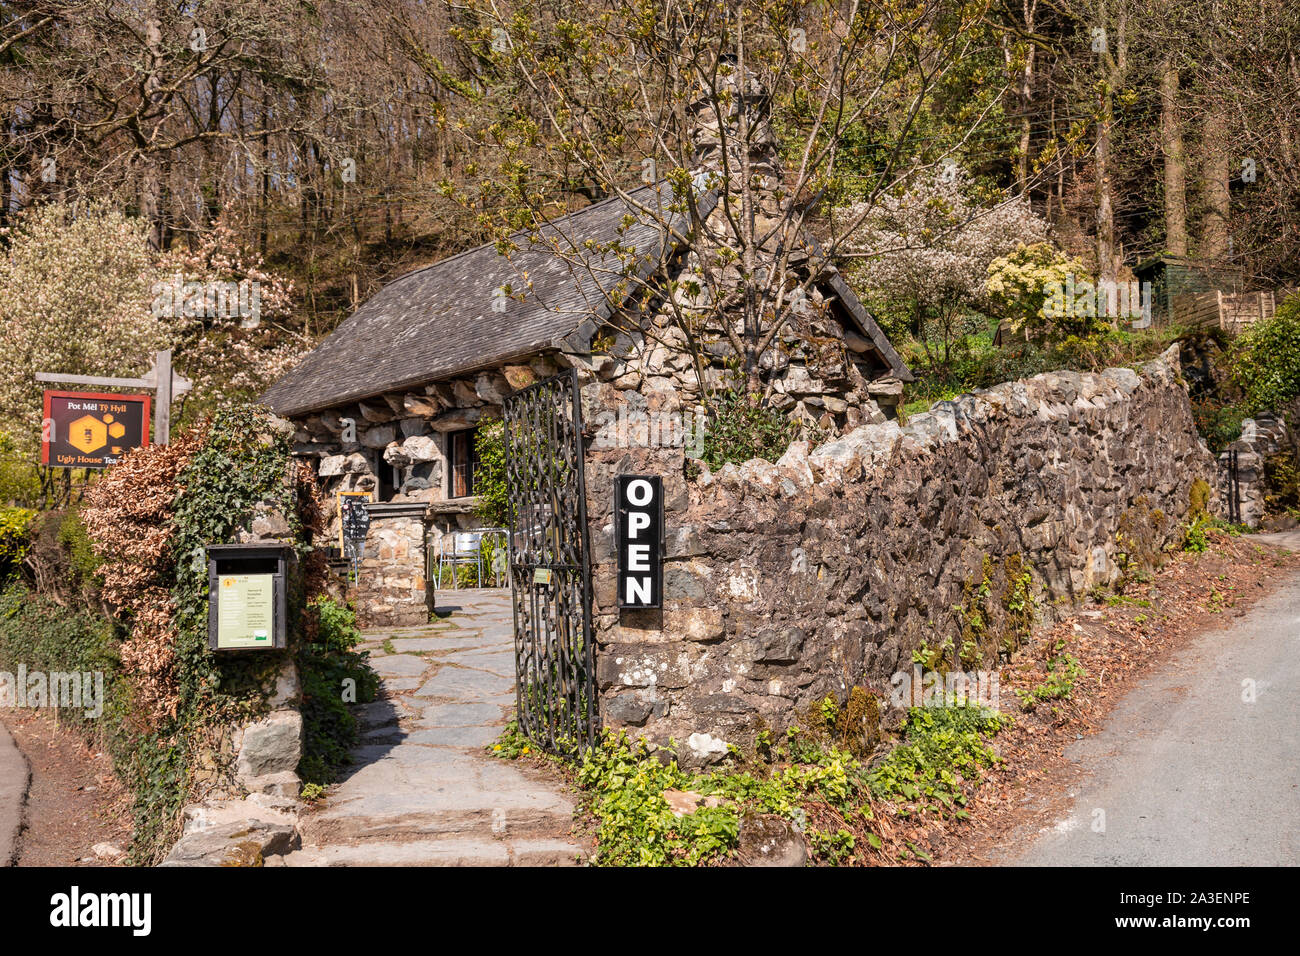 The Ugly House at Betws-y-Coed, Snowdonia, North Wales Stock Photo